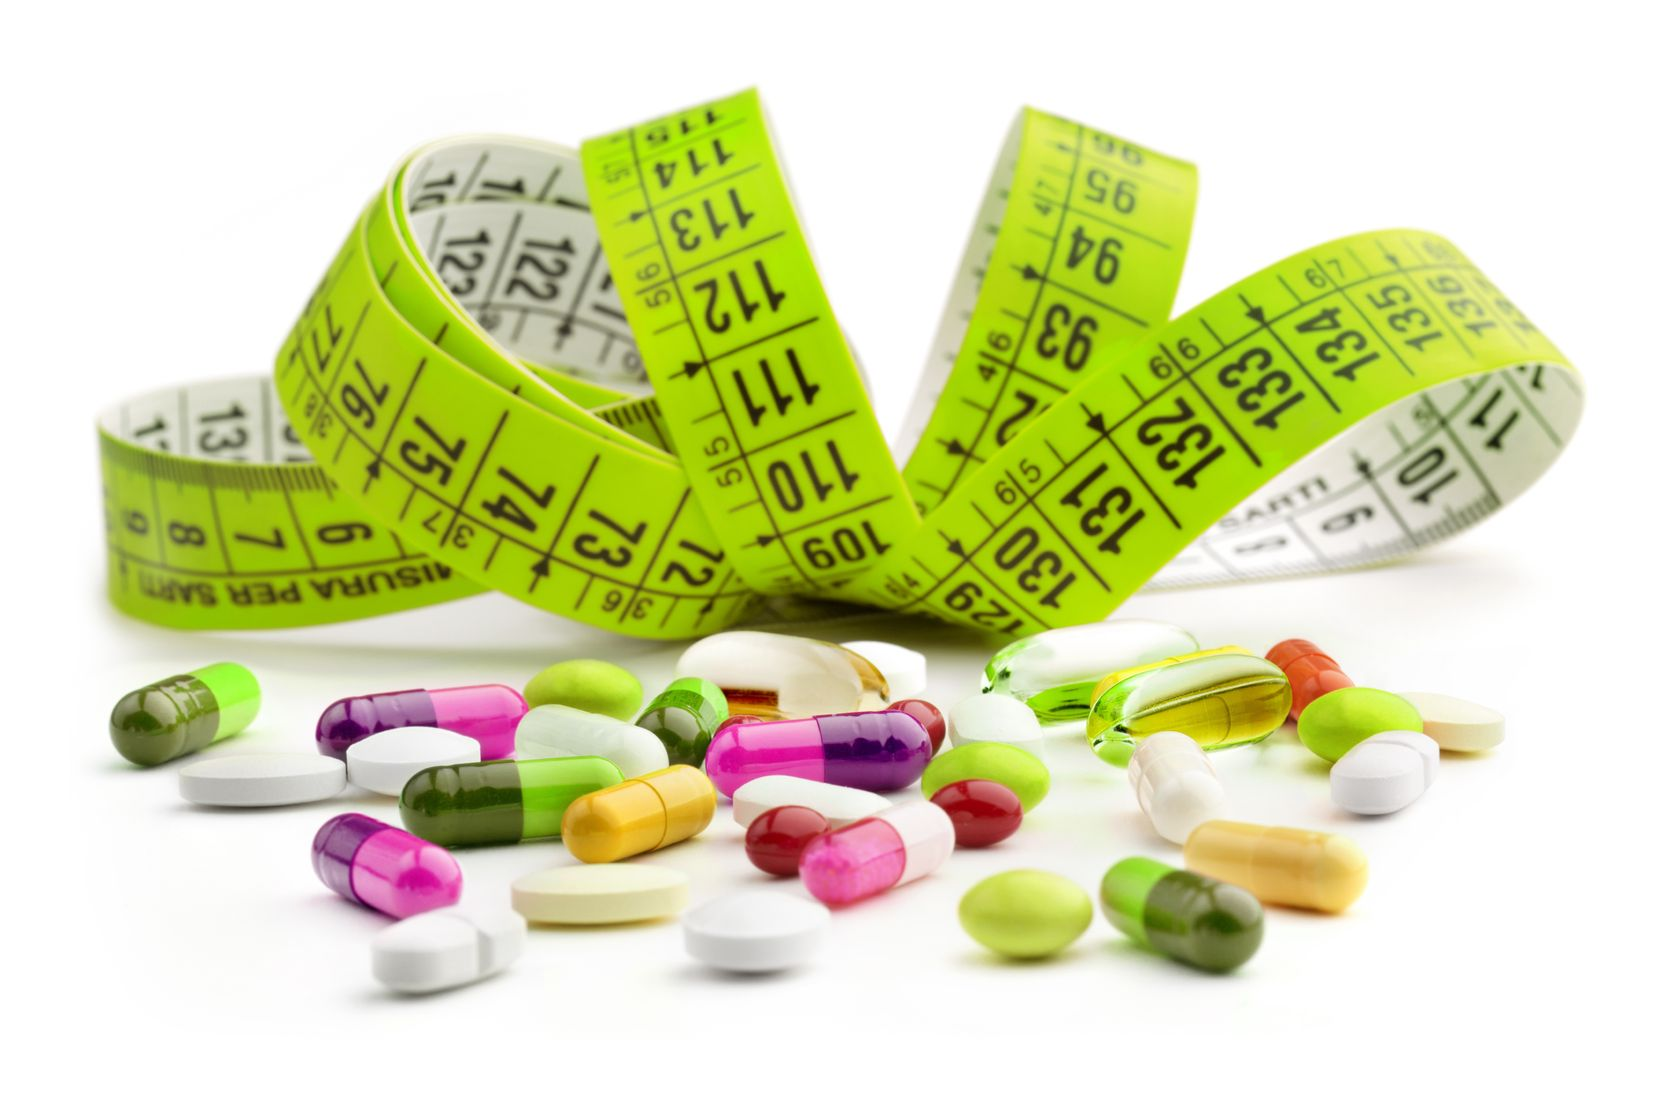 Best weight loss pill review image 1